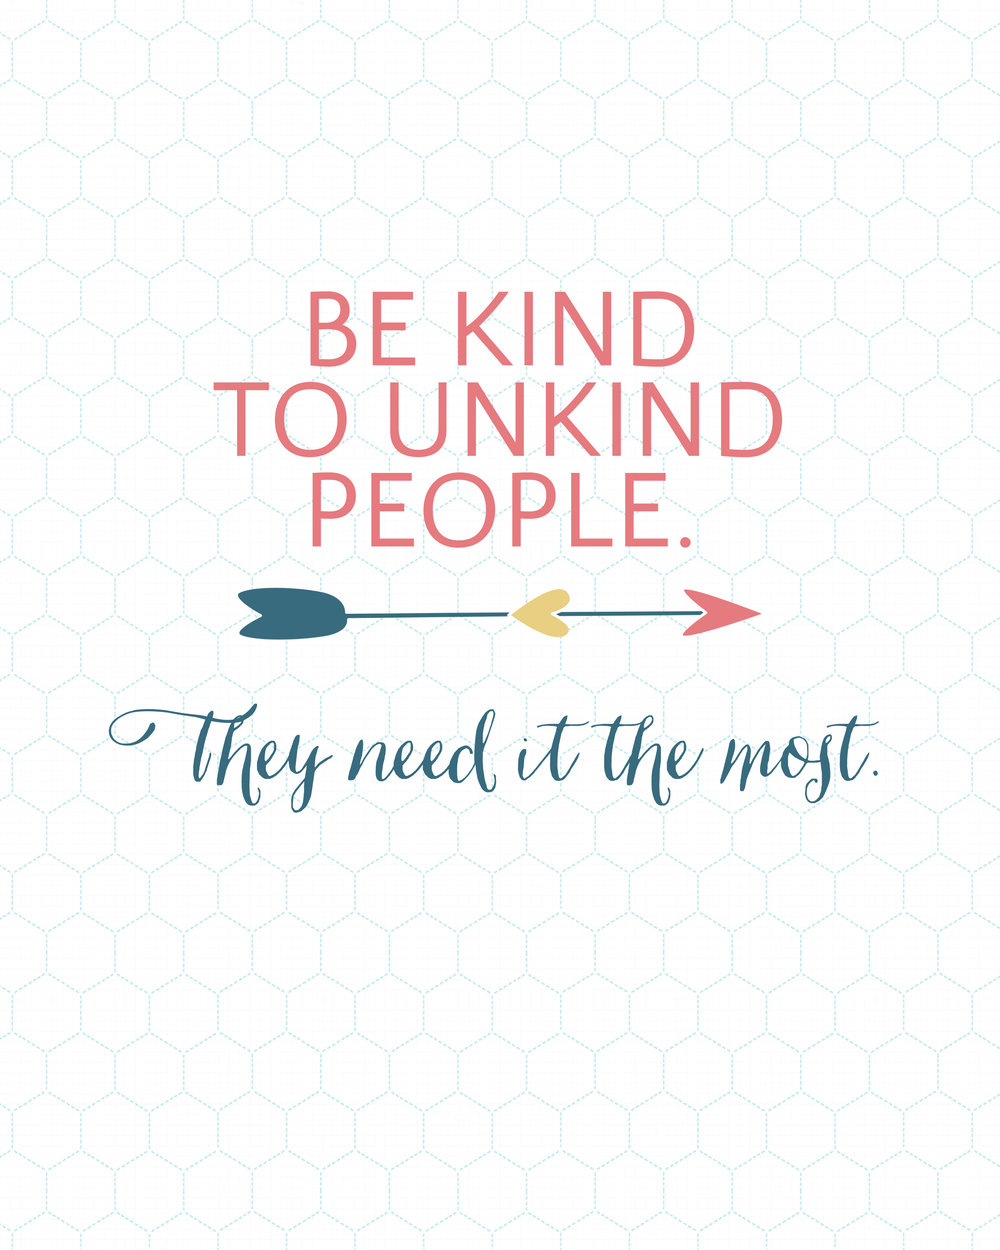 Be-Kind-to-Unkind-People-Quote.jpg